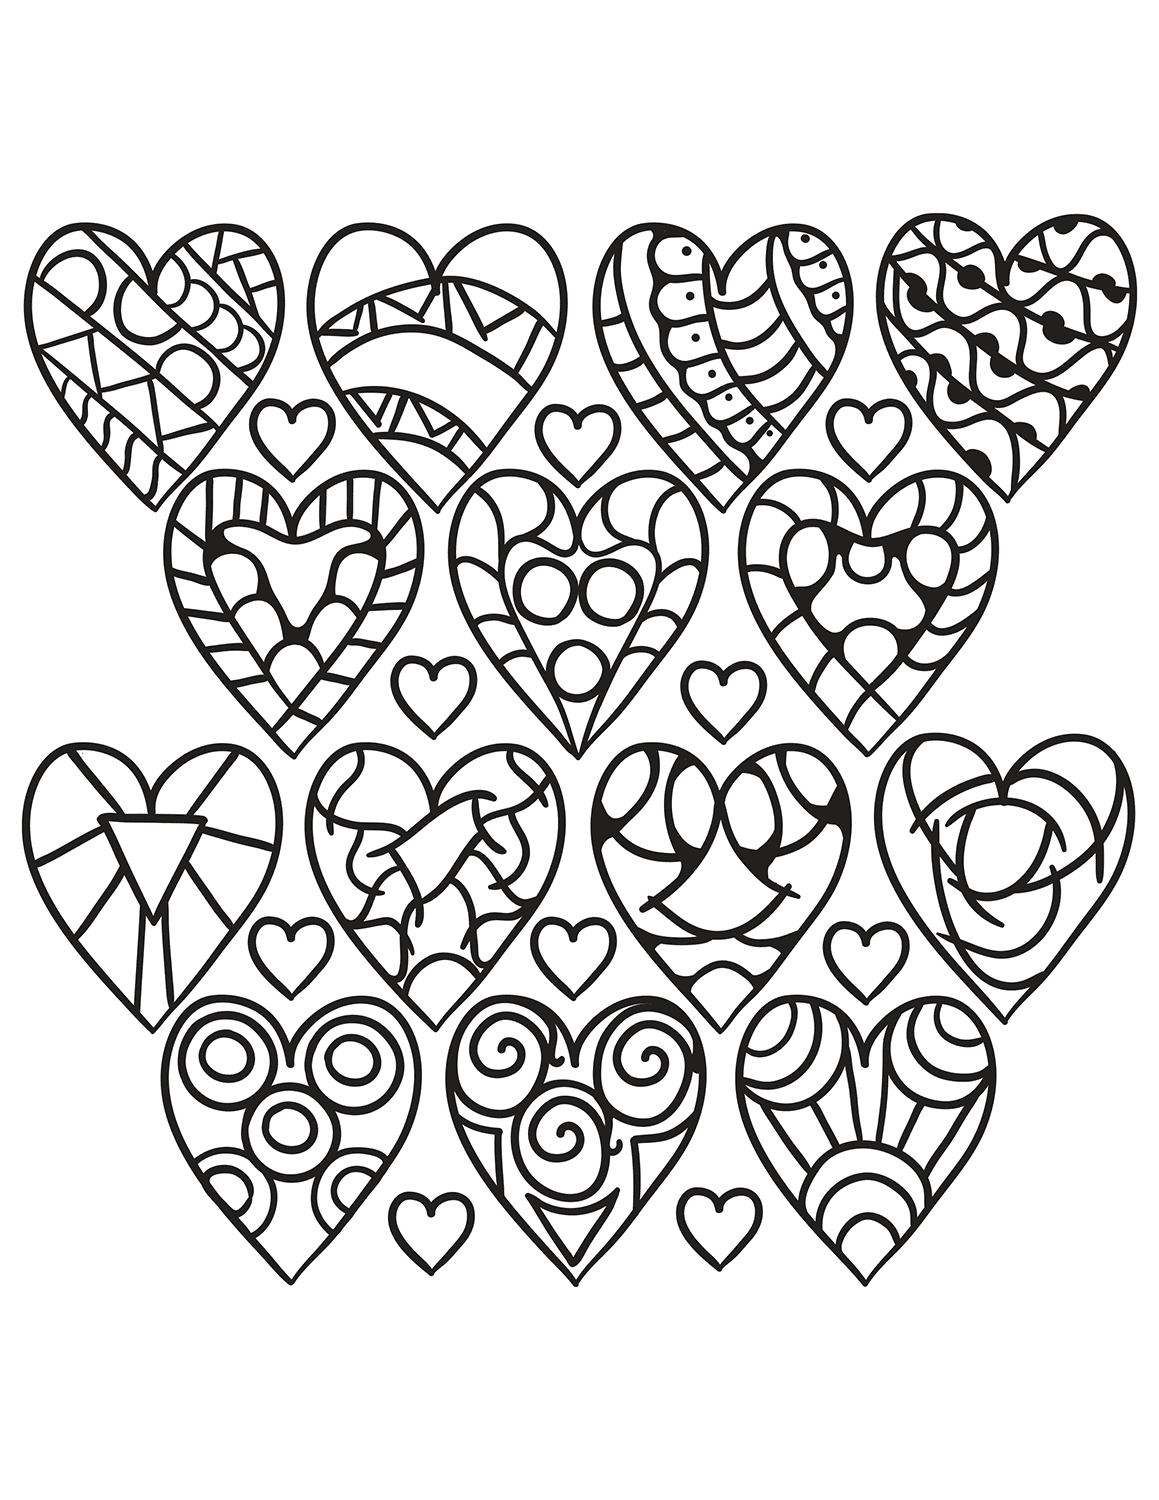 Fabulous image with printable hearts to color